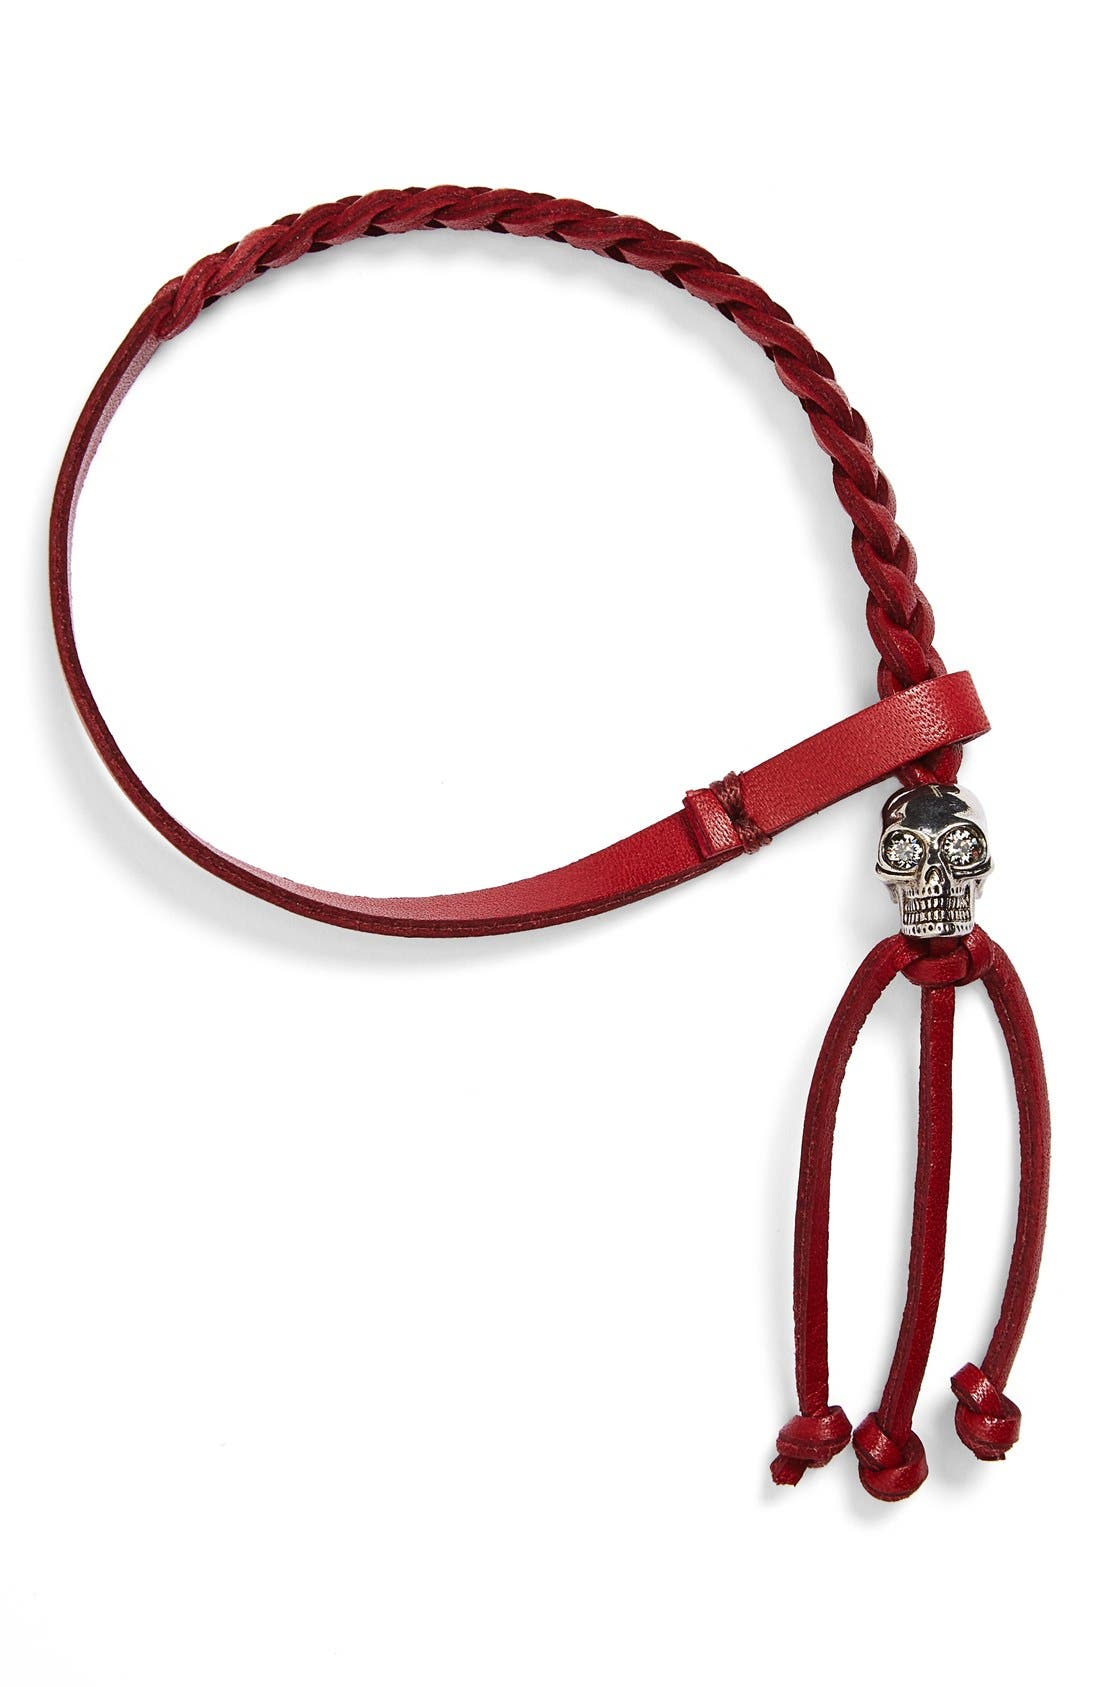 ALEXANDER MCQUEEN Skull Braided Leather Bracelet, Main, color, 600